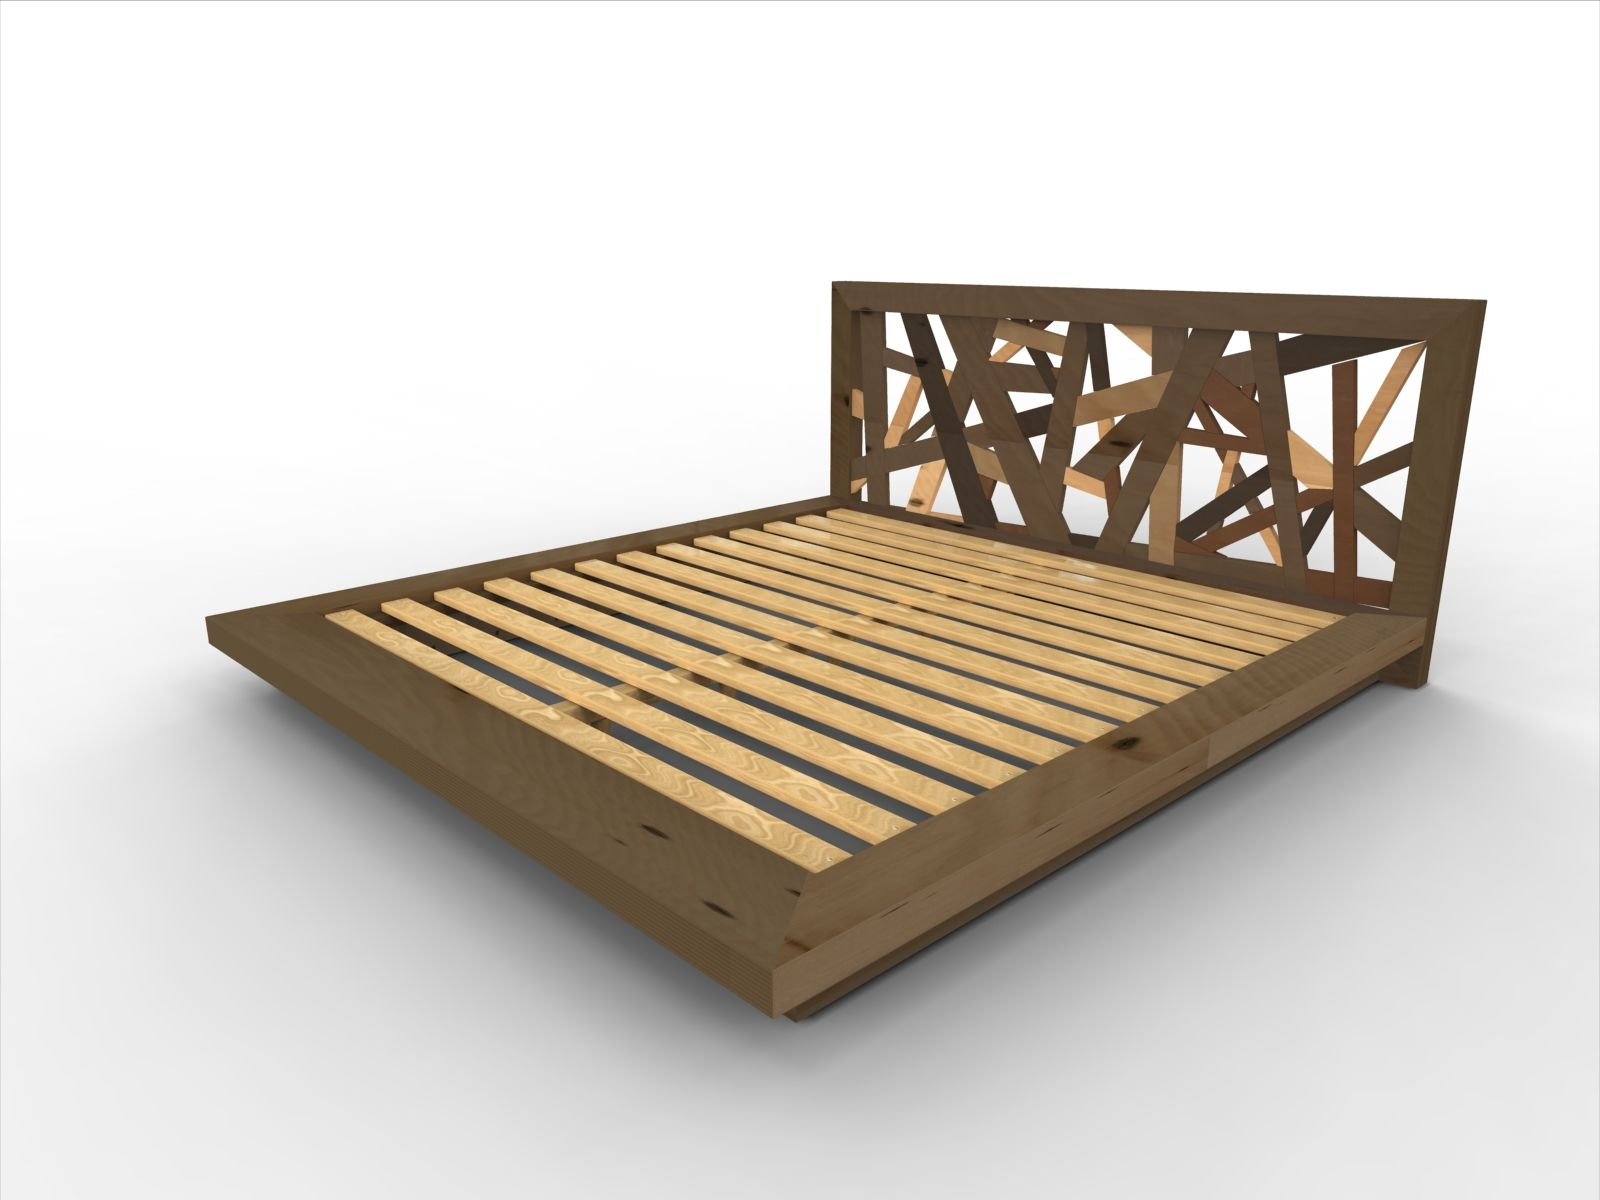 Diy bed frame with storage the lincoln series platform Simple wood bed frame designs